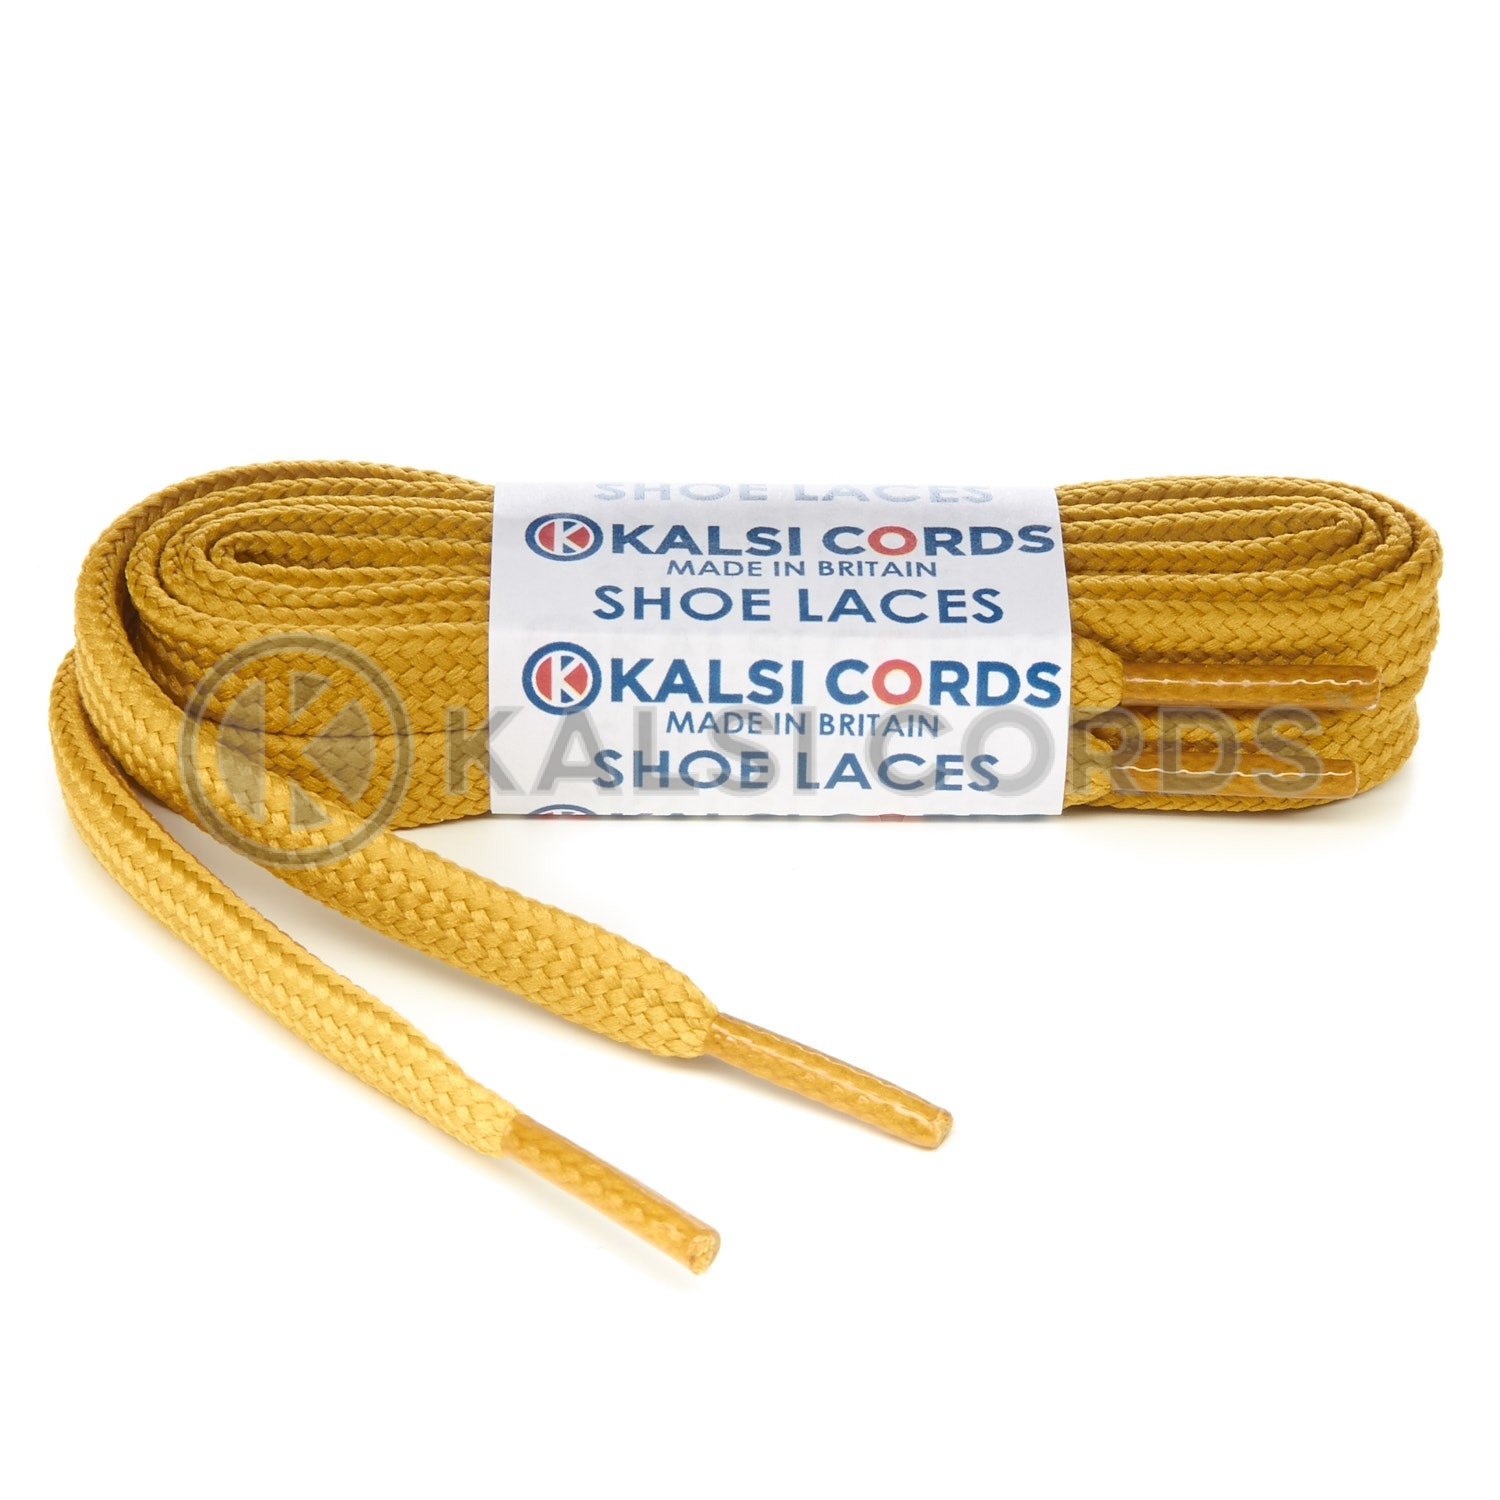 R1176 9mm Flat Shoe Laces Tubular Sovereign Gold PG930 Sports Trainers Boots Footwear Hoodies Joggers Drawstring Drawcord Braid